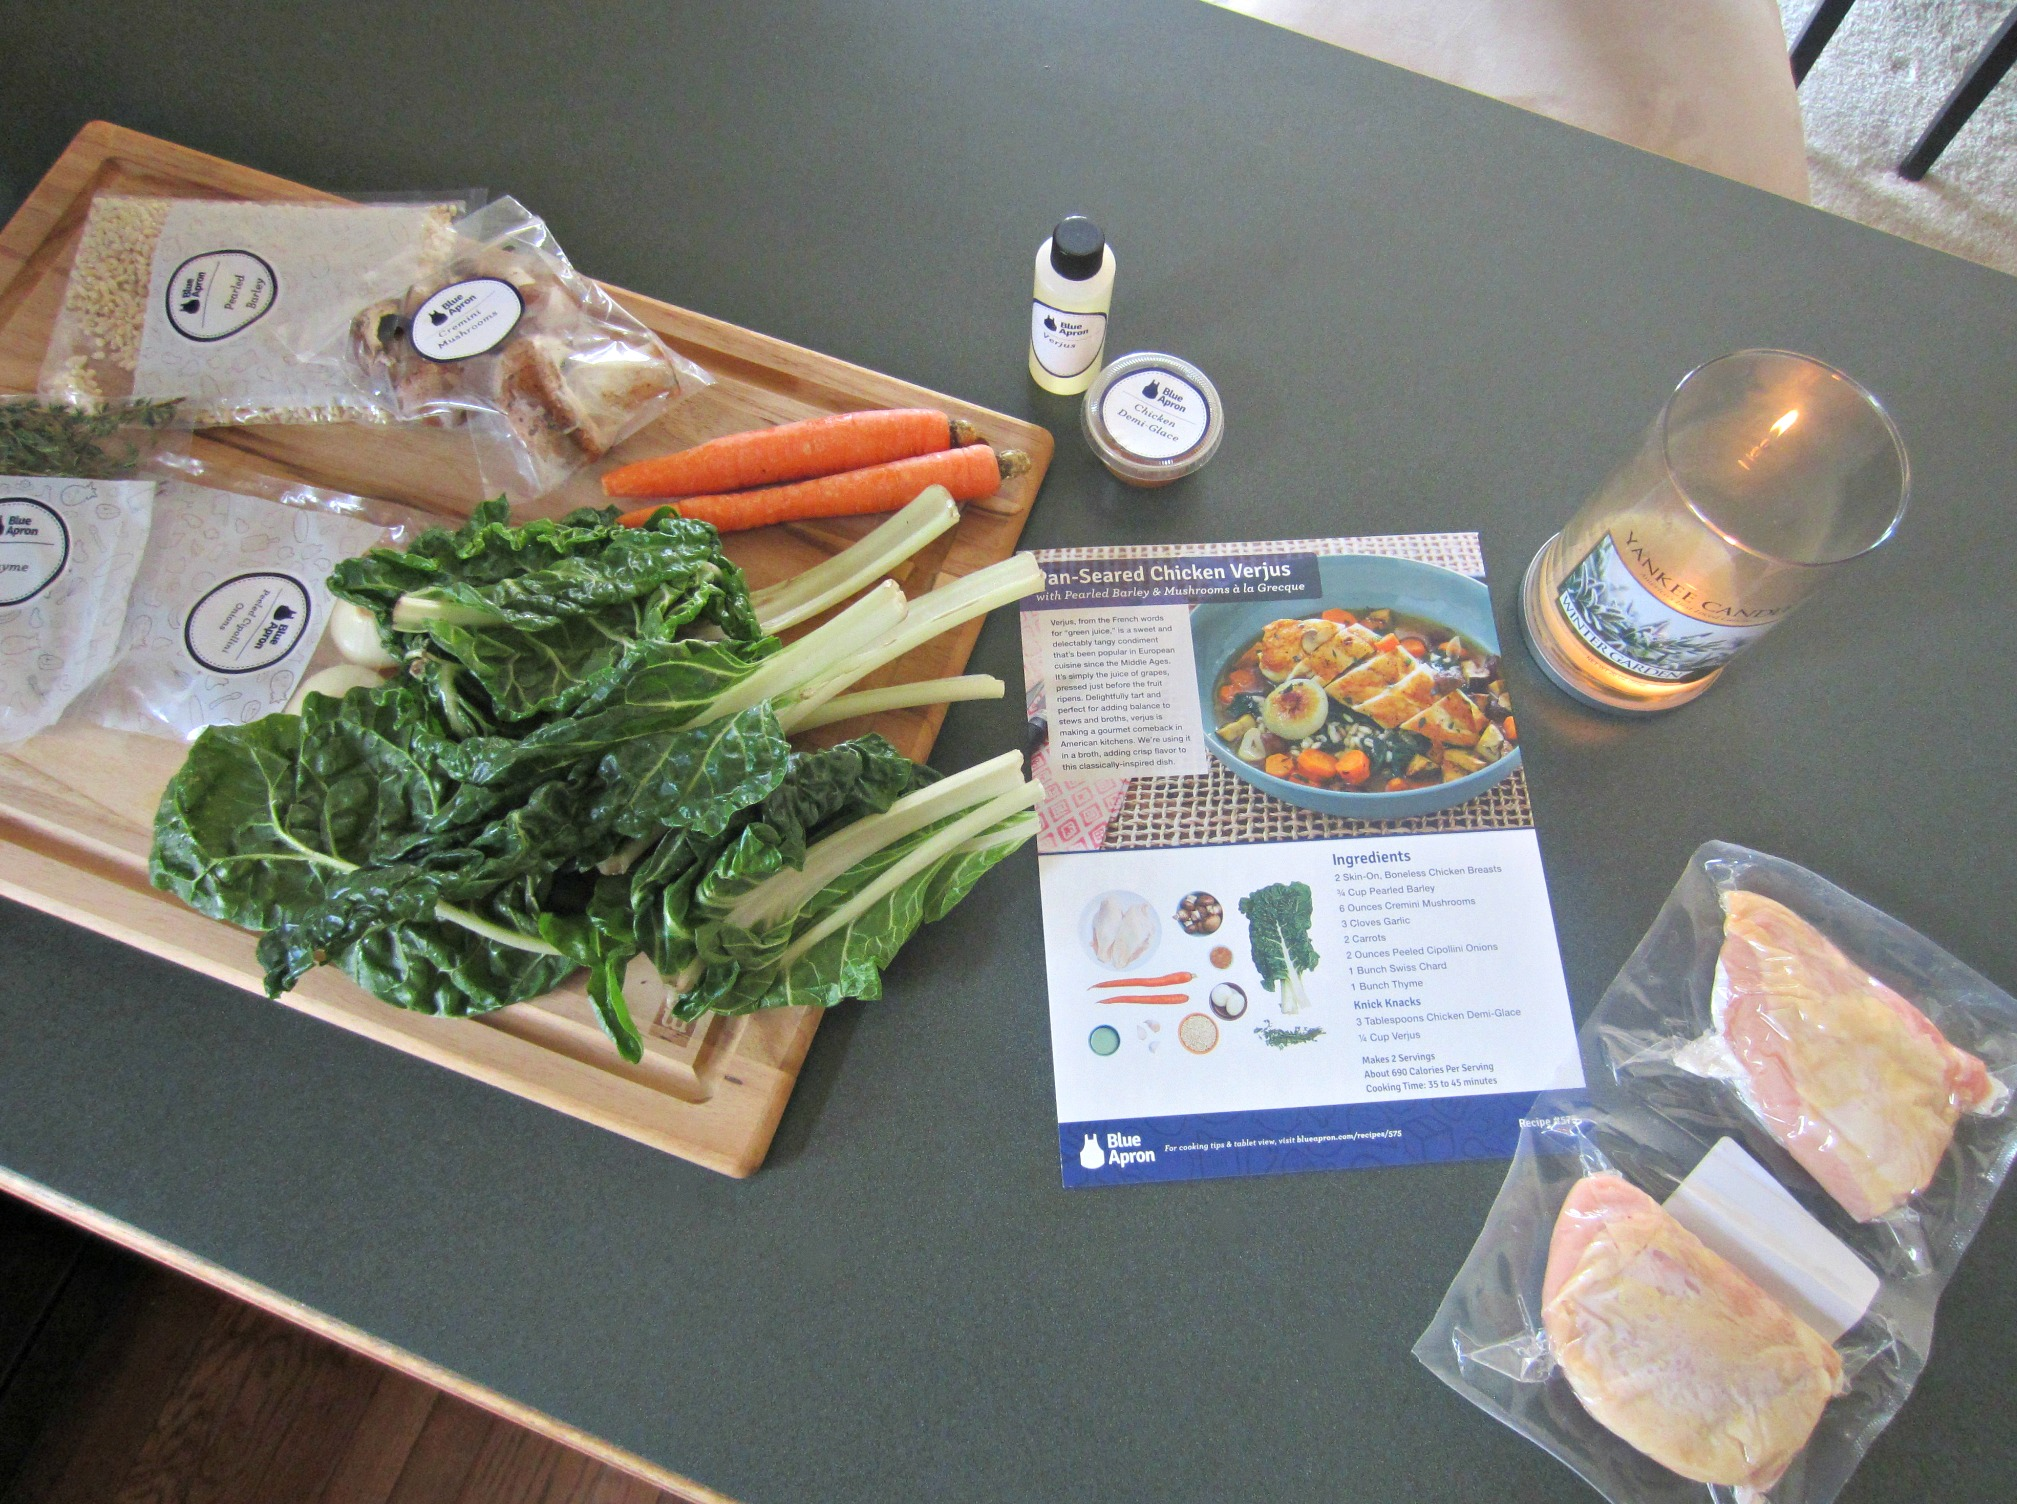 Pan-Seared Chicken Verjus Blue Apron Meal 1